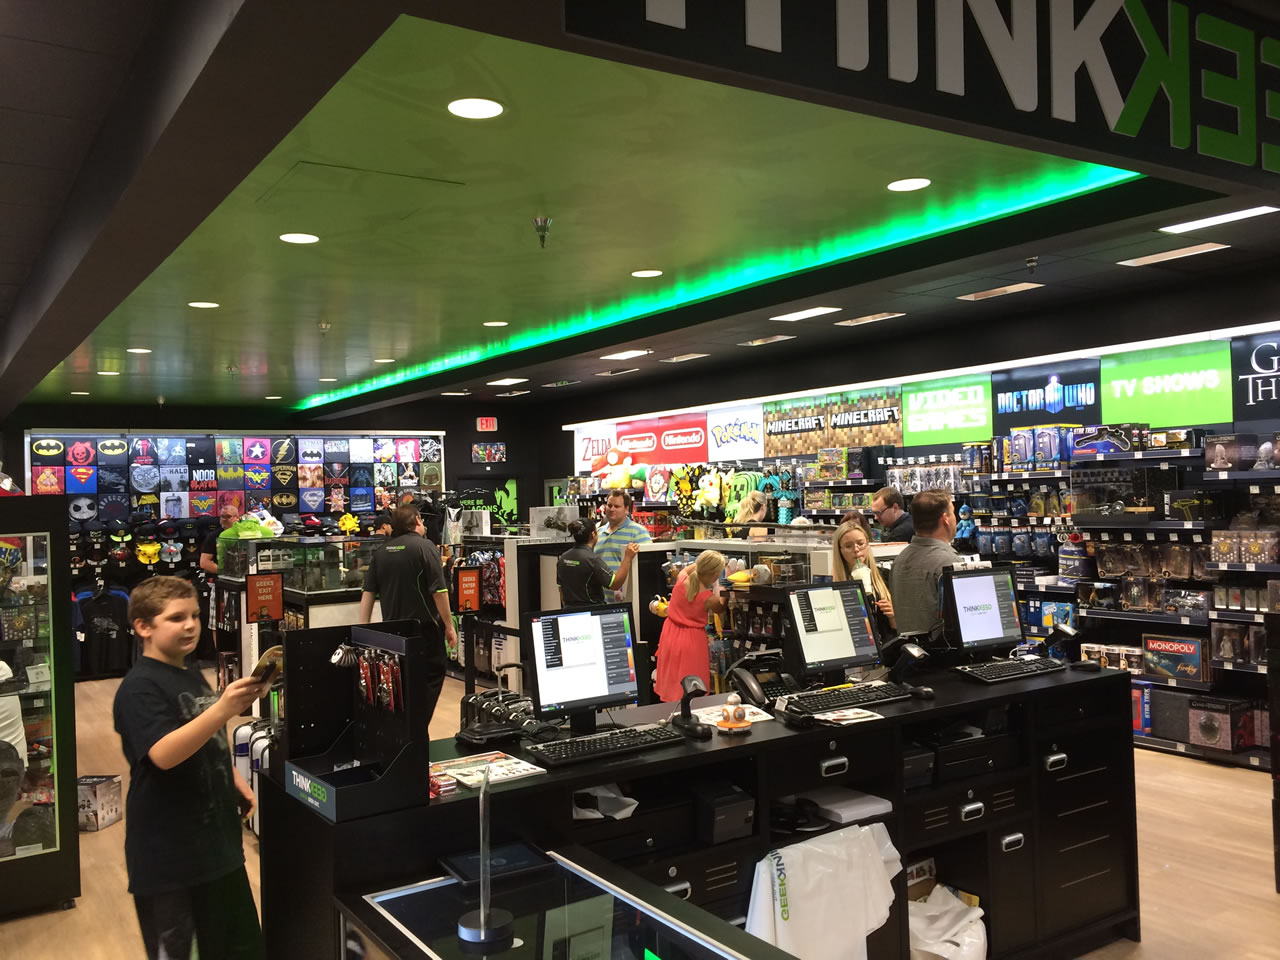 12 thinkgeek store - from middle